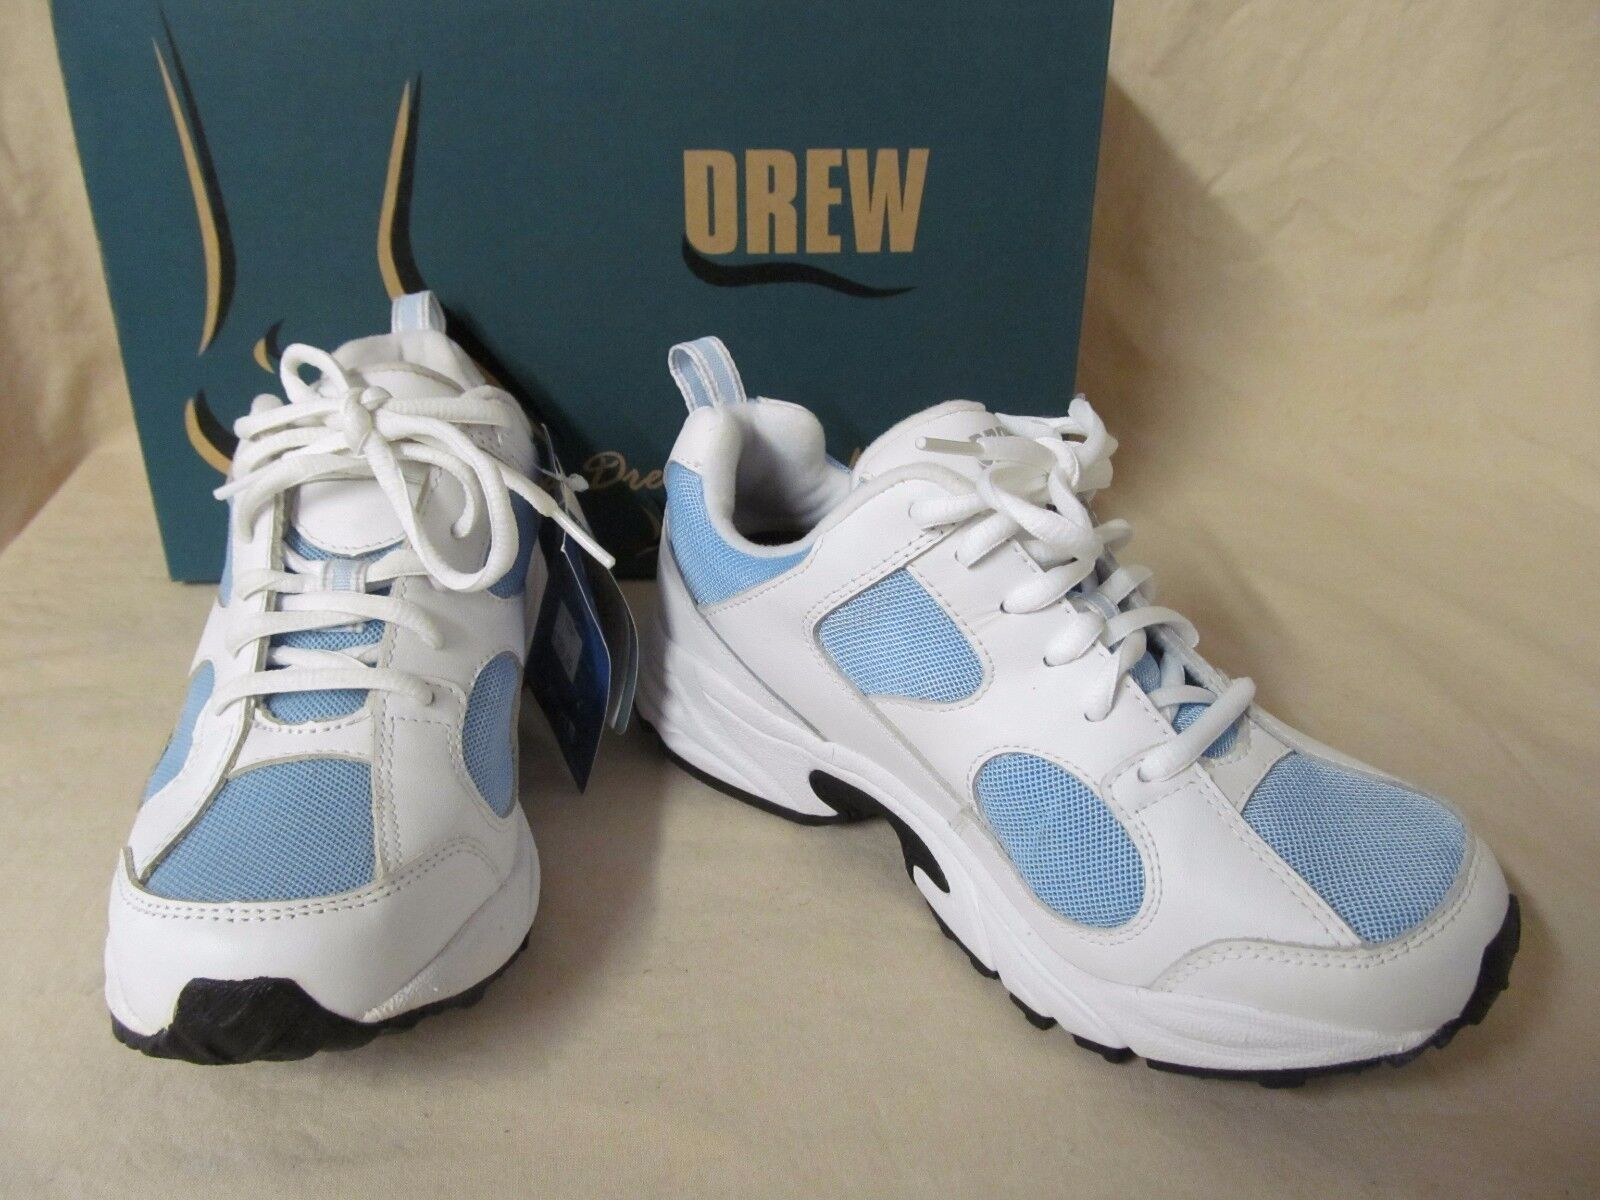 NWD Drew 6.5 M Flash Blanc  Bleu Leather Lace Up Athletic Chaussures Sneakers B